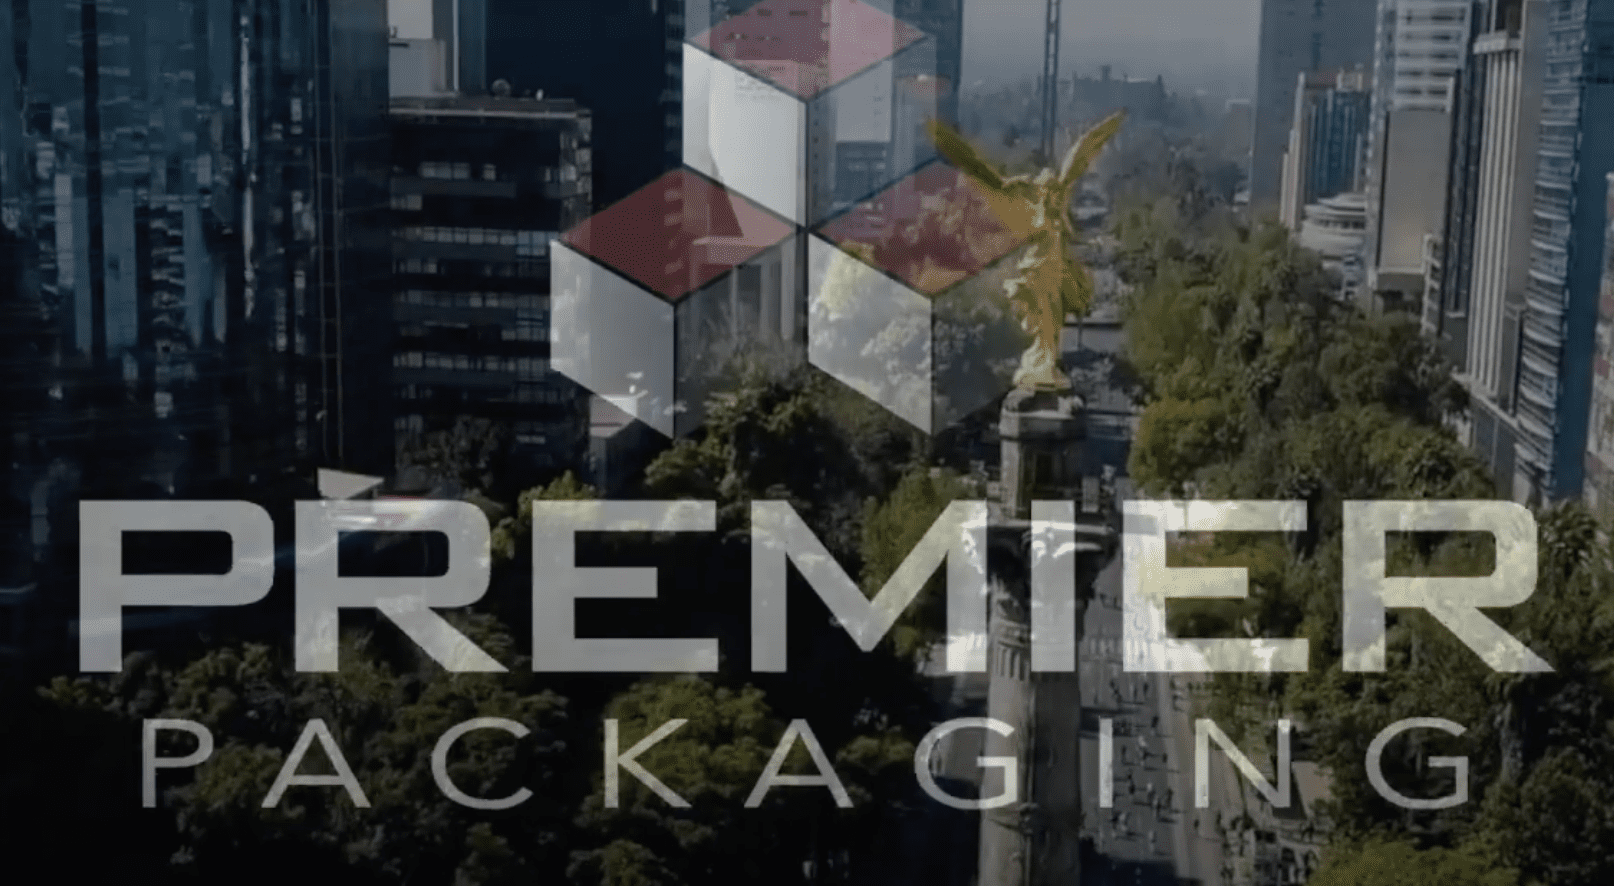 Premier Packaging logo overlayed on video of Mexico City